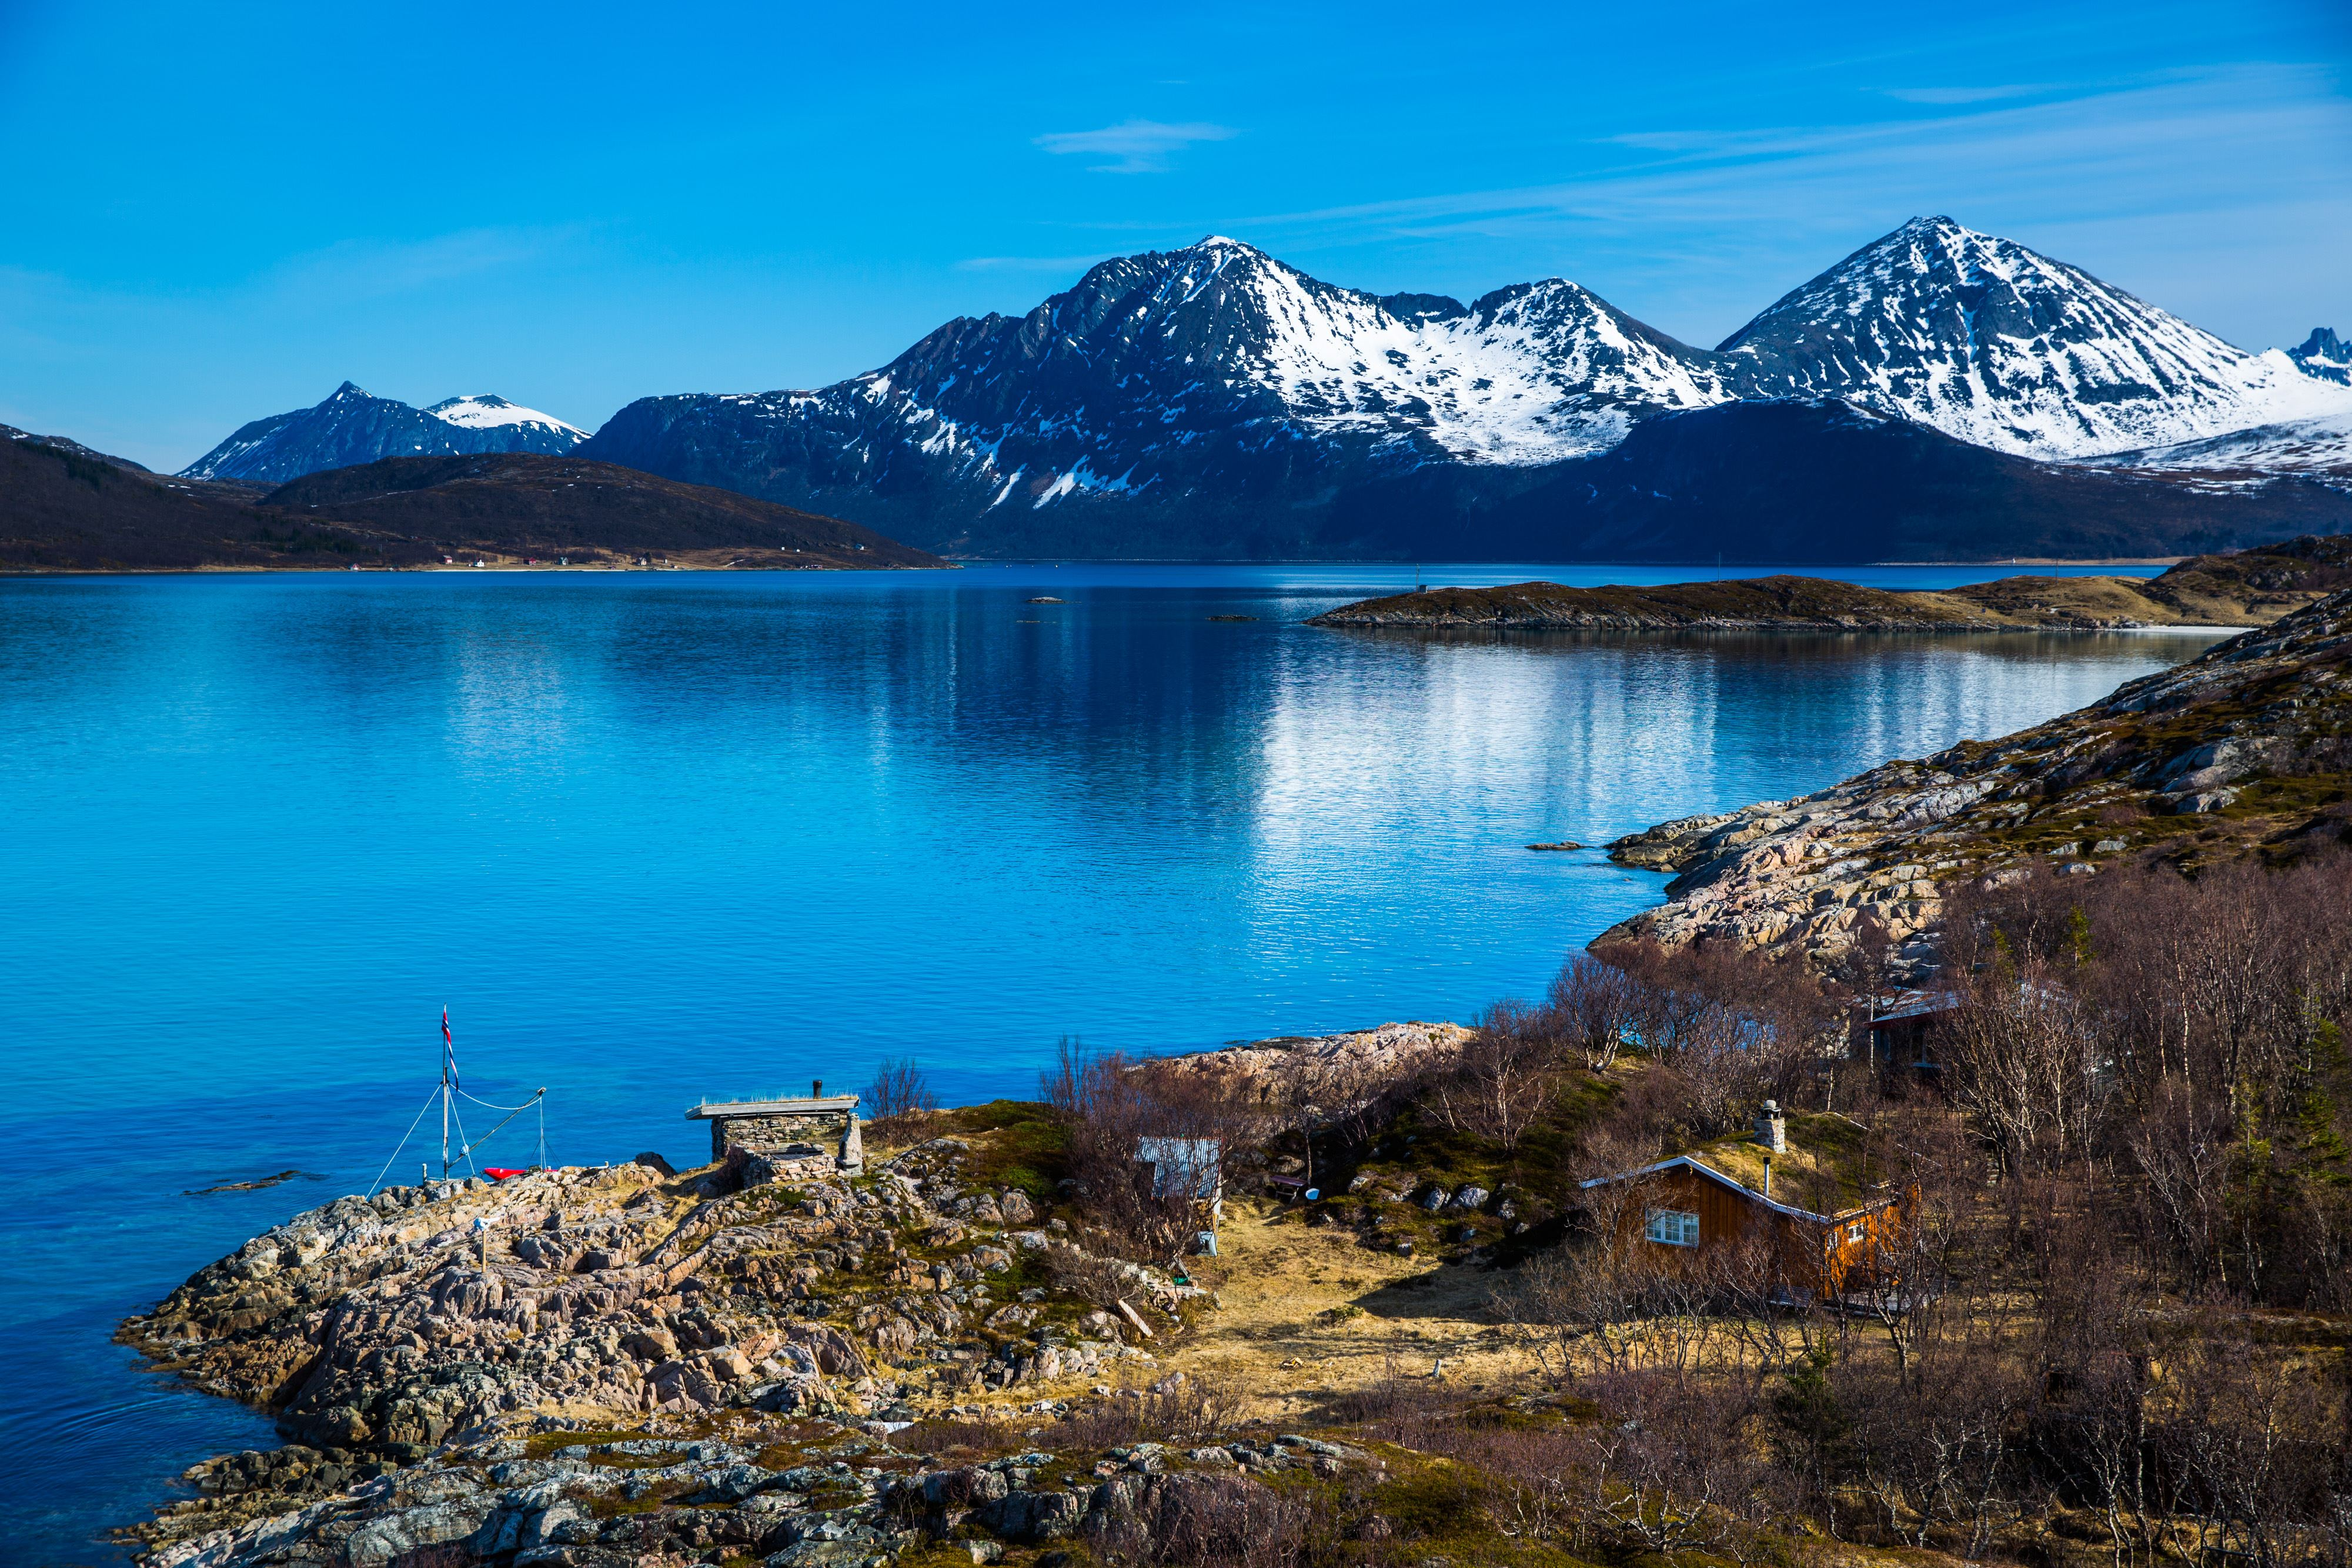 EXPLORE THE FJORDS - a trip by car along the coast of Kvaløya – day tour - Ersfjordbotn Brygge